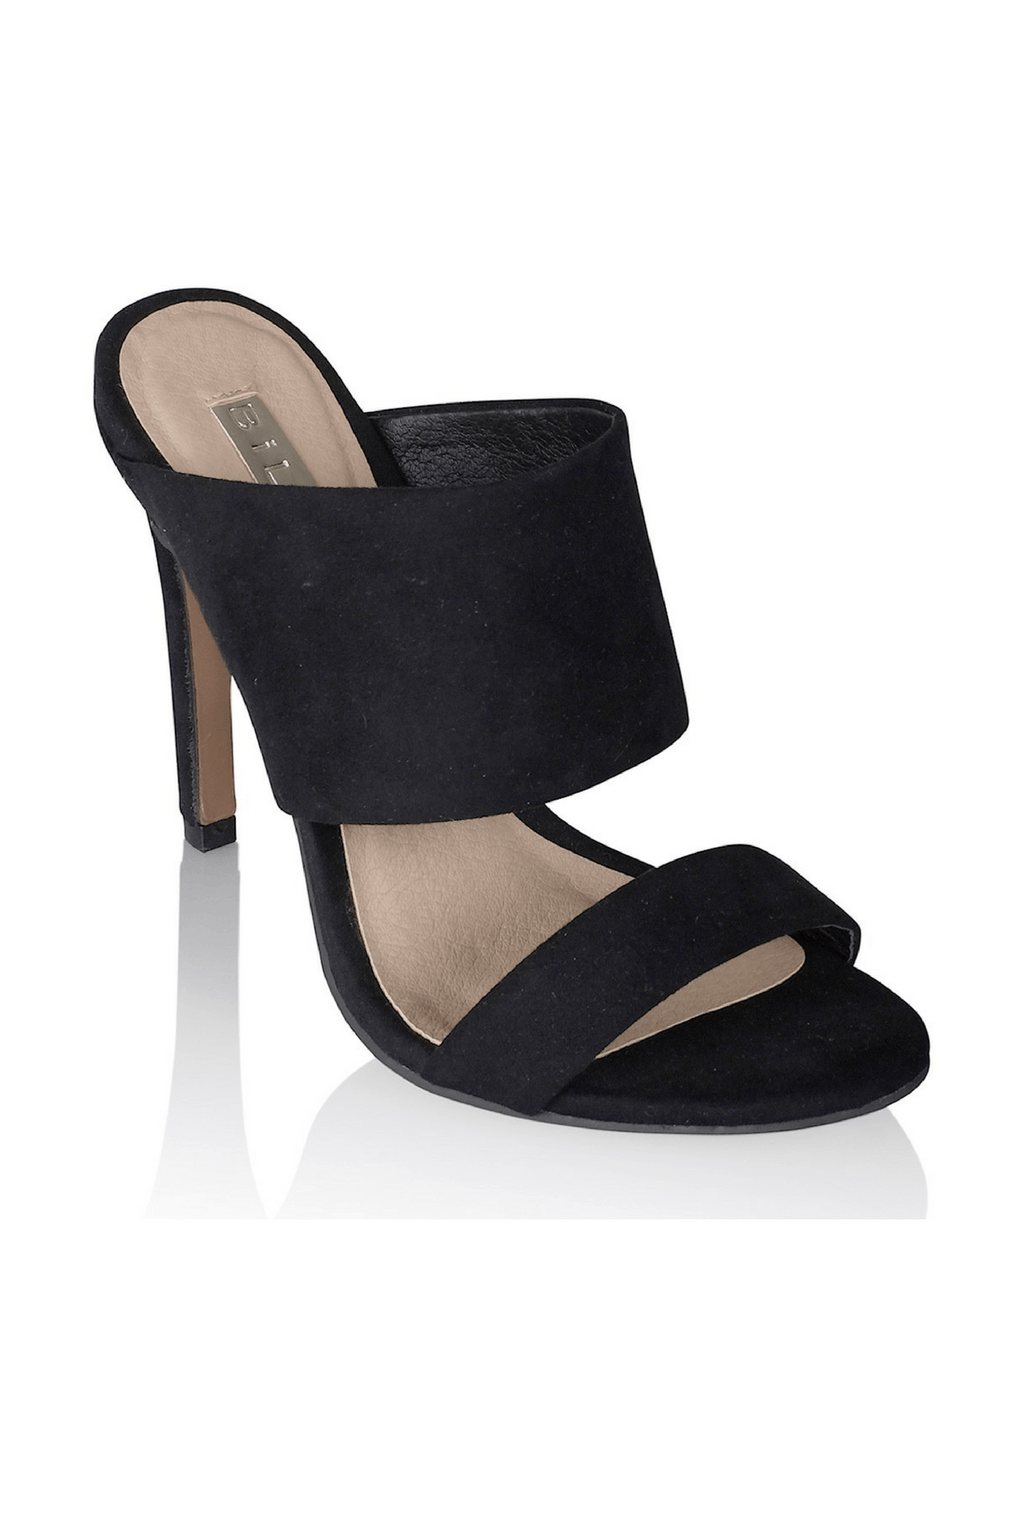 Cavita Black Suede - Billini Shoes